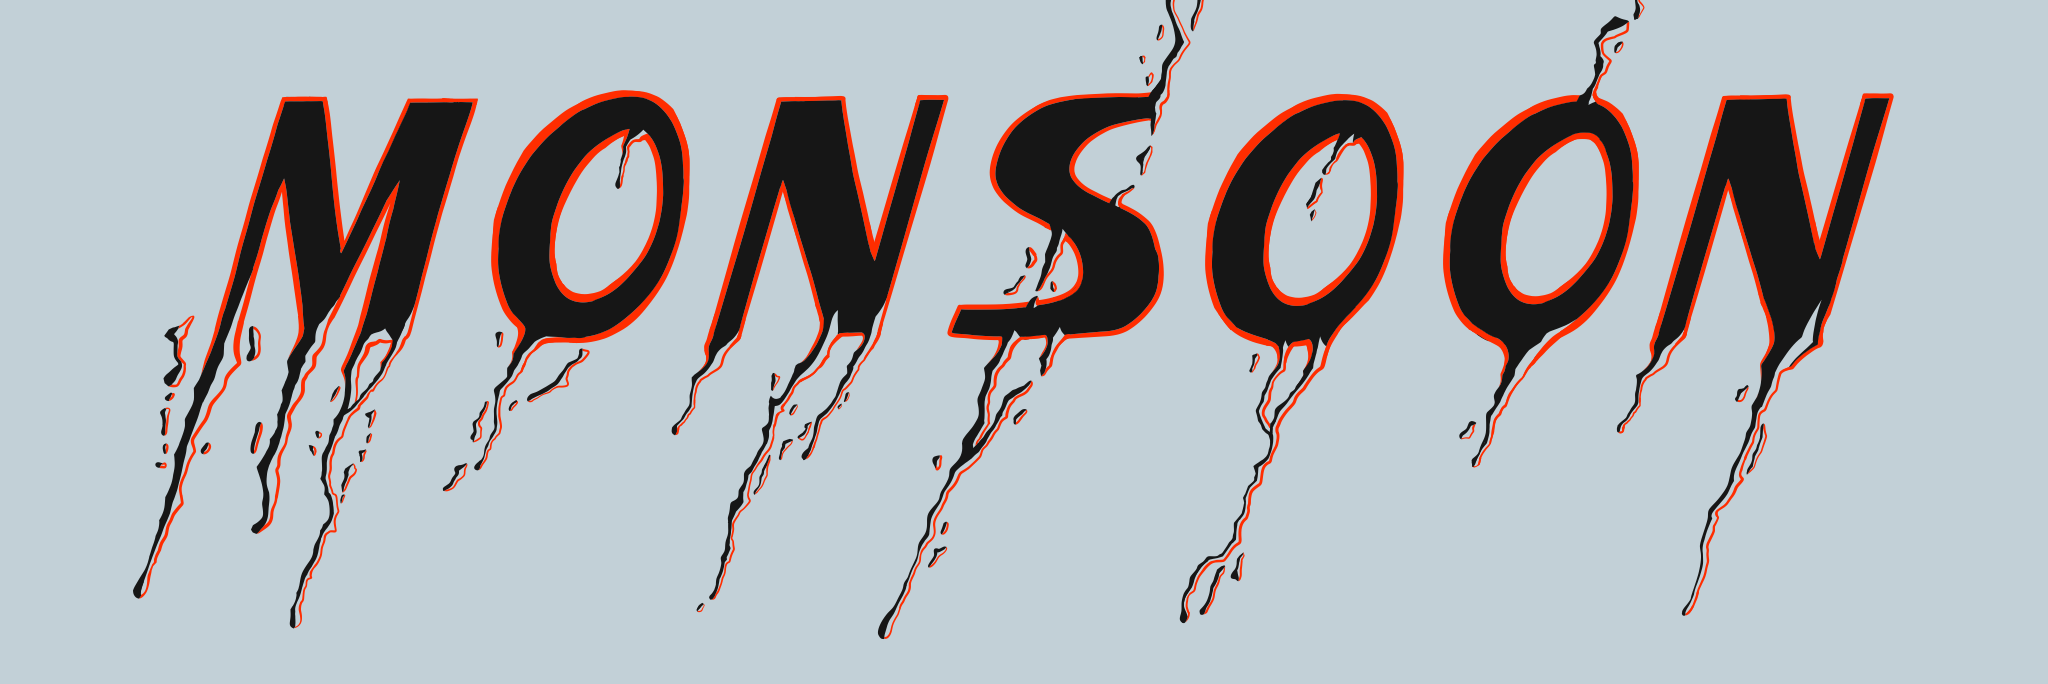 """Lettering illustration of the word """"monsoon"""" with raindrop effect"""